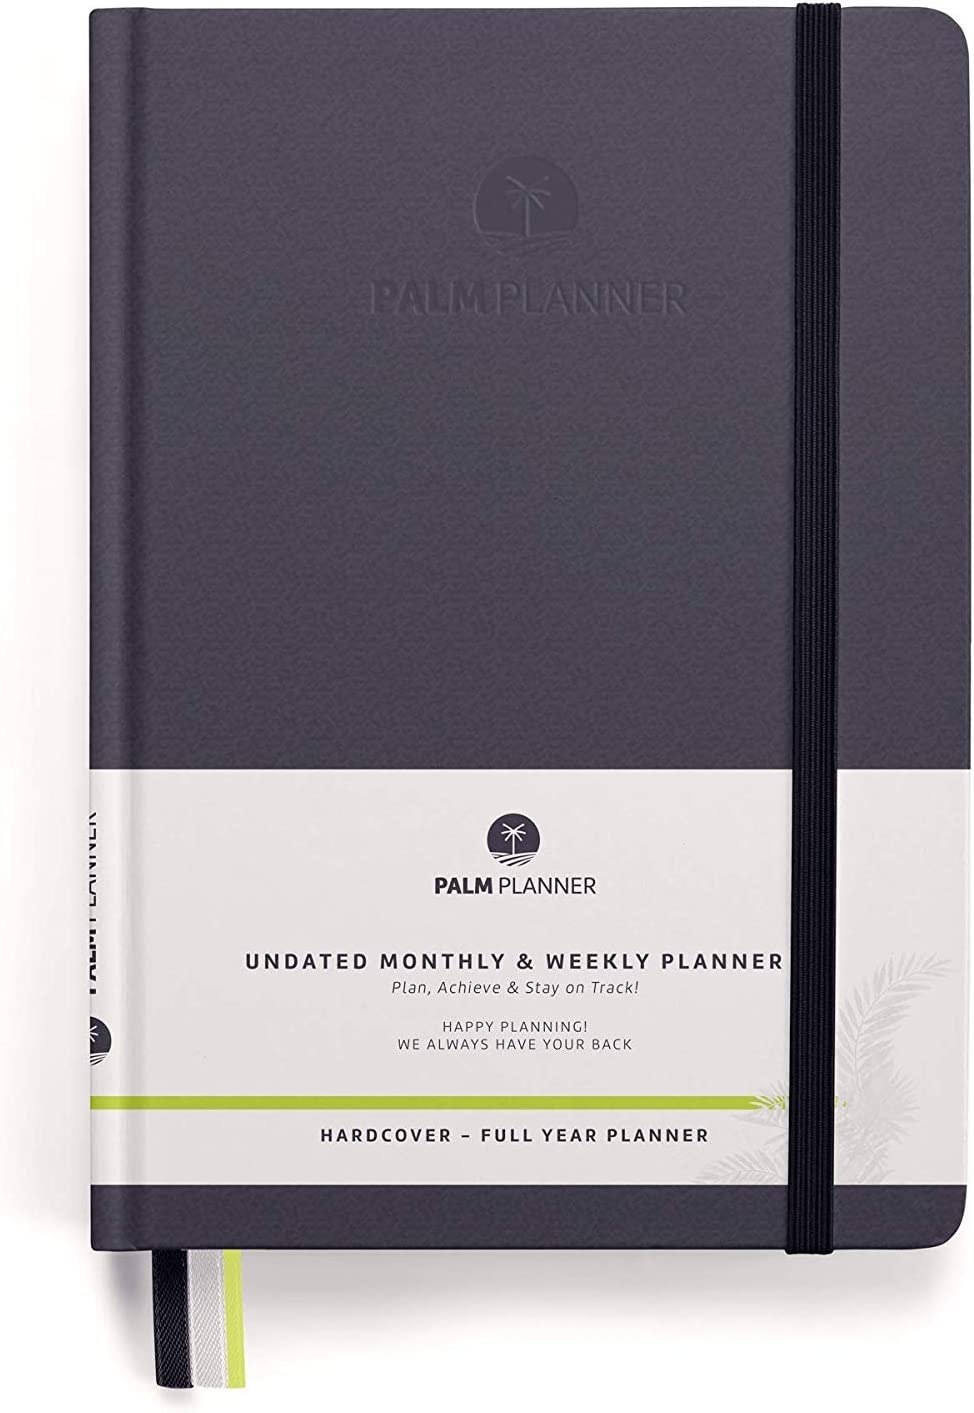 Palm PlannerUndated Monthly and Weekly Agenda To Achieve Goals and Happiness, Vision Board, Smart Goals and a Plan To Boost Productivity in 2019/2020 Full Year (Hardcover,Gray)